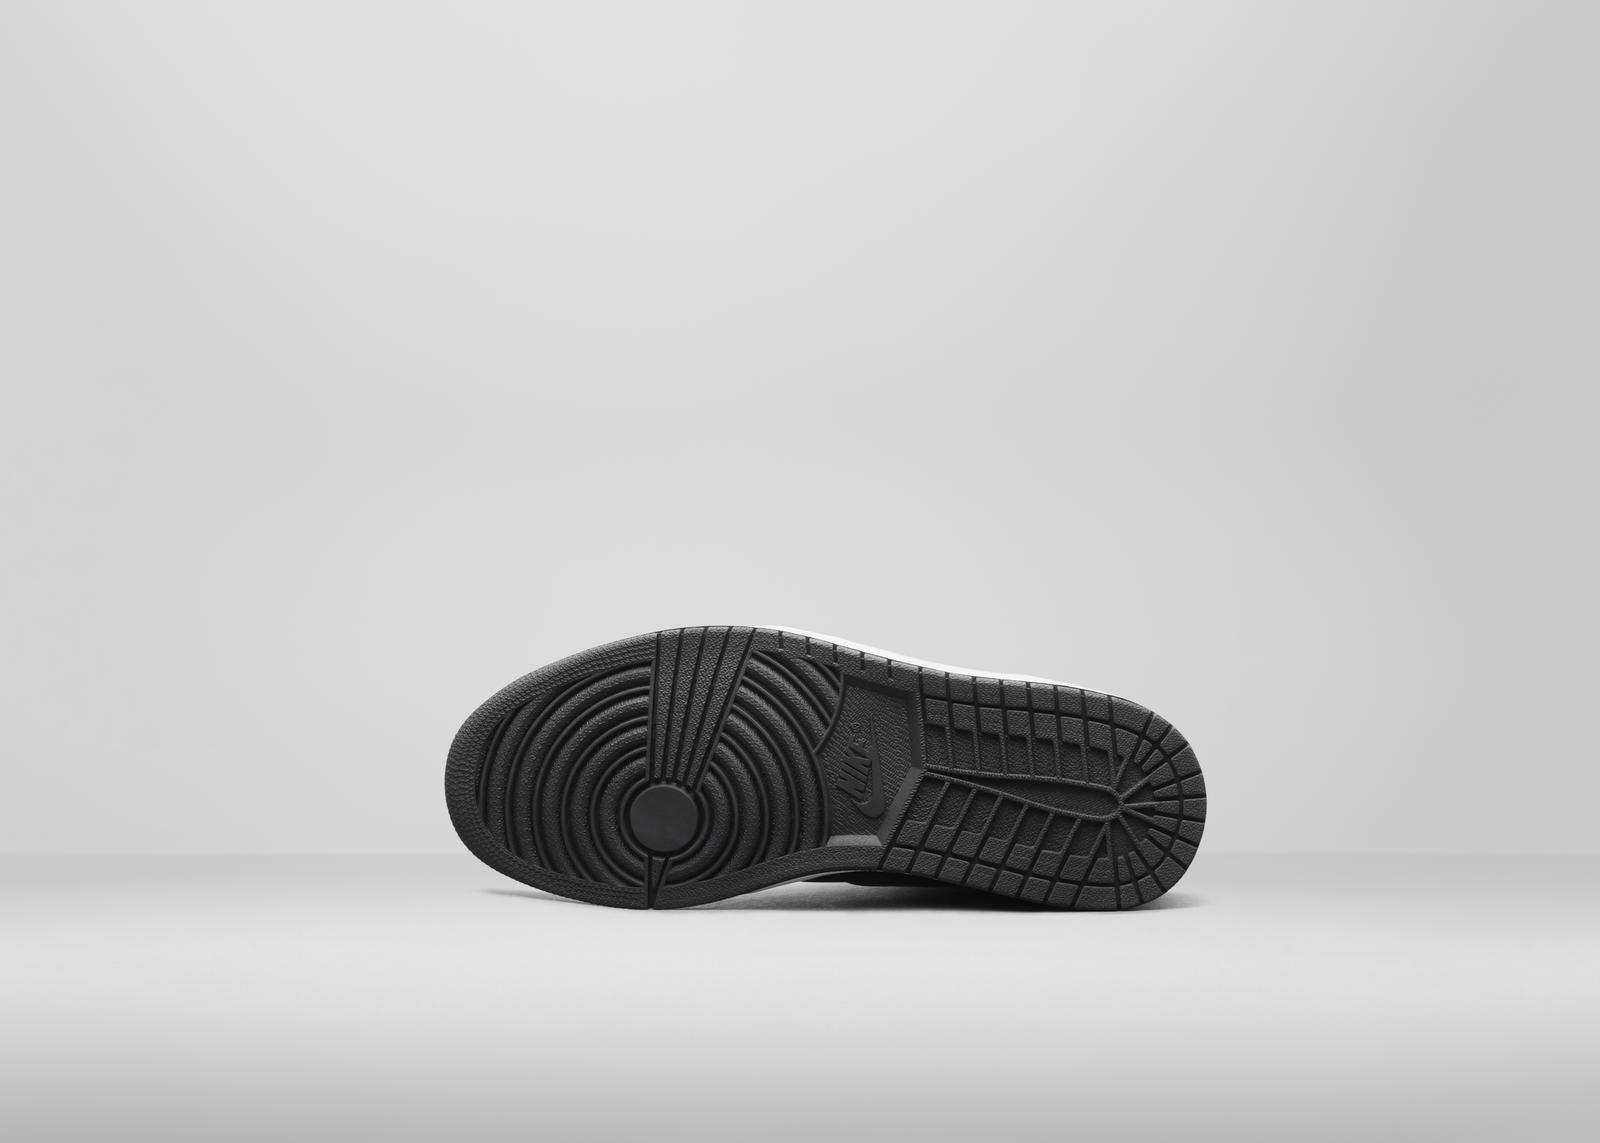 555088-013_a2_outsole_hr_rectangle_1600